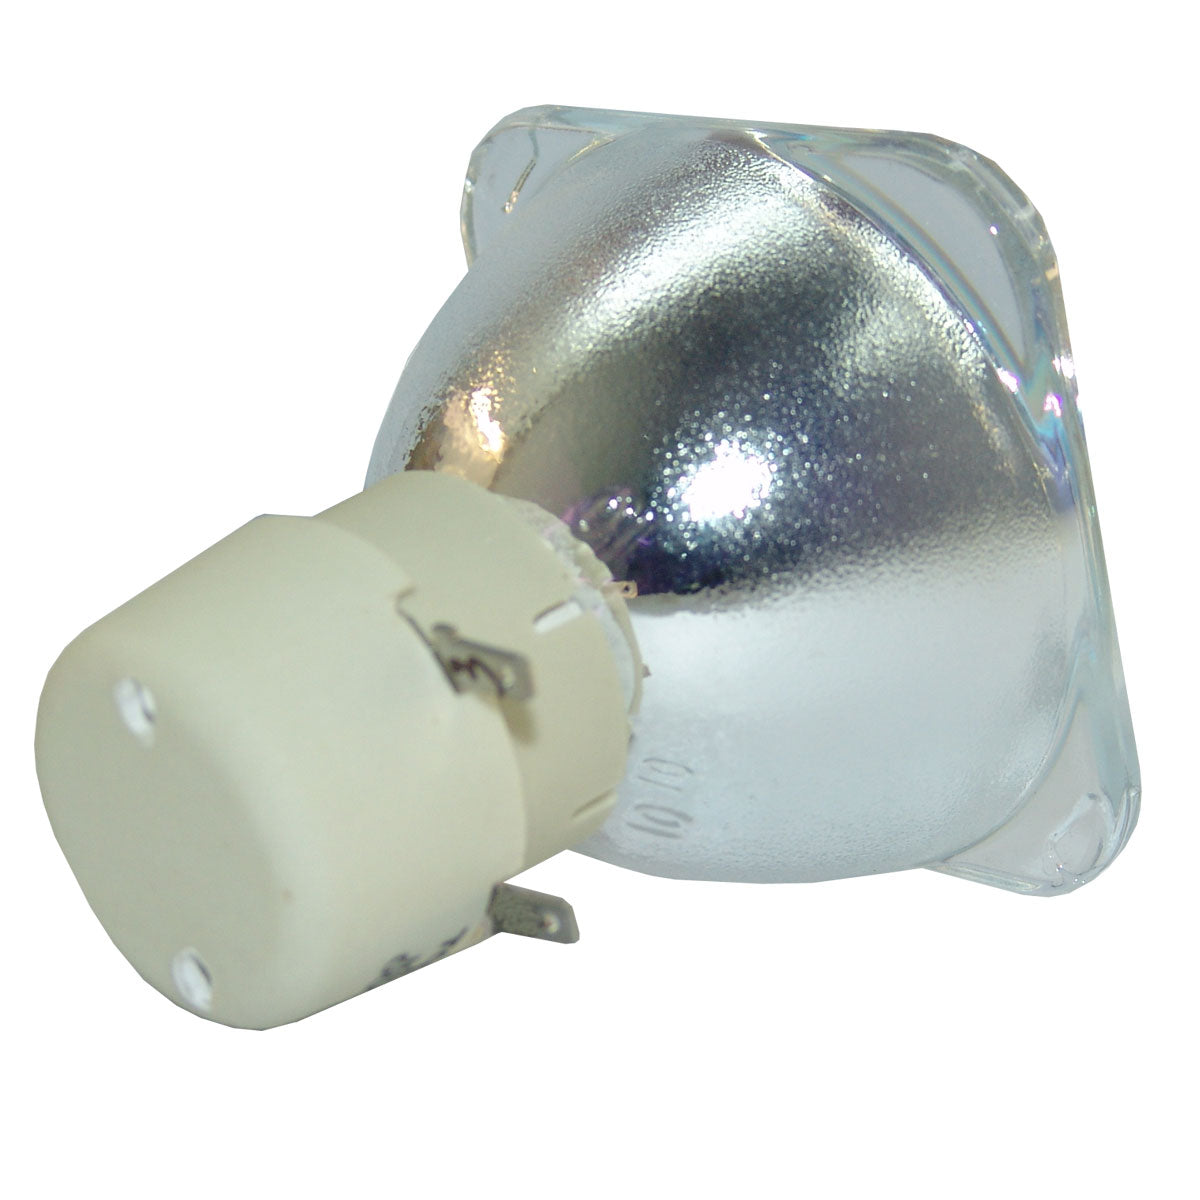 RICOH 512984 Philips Projector Bare Lamp